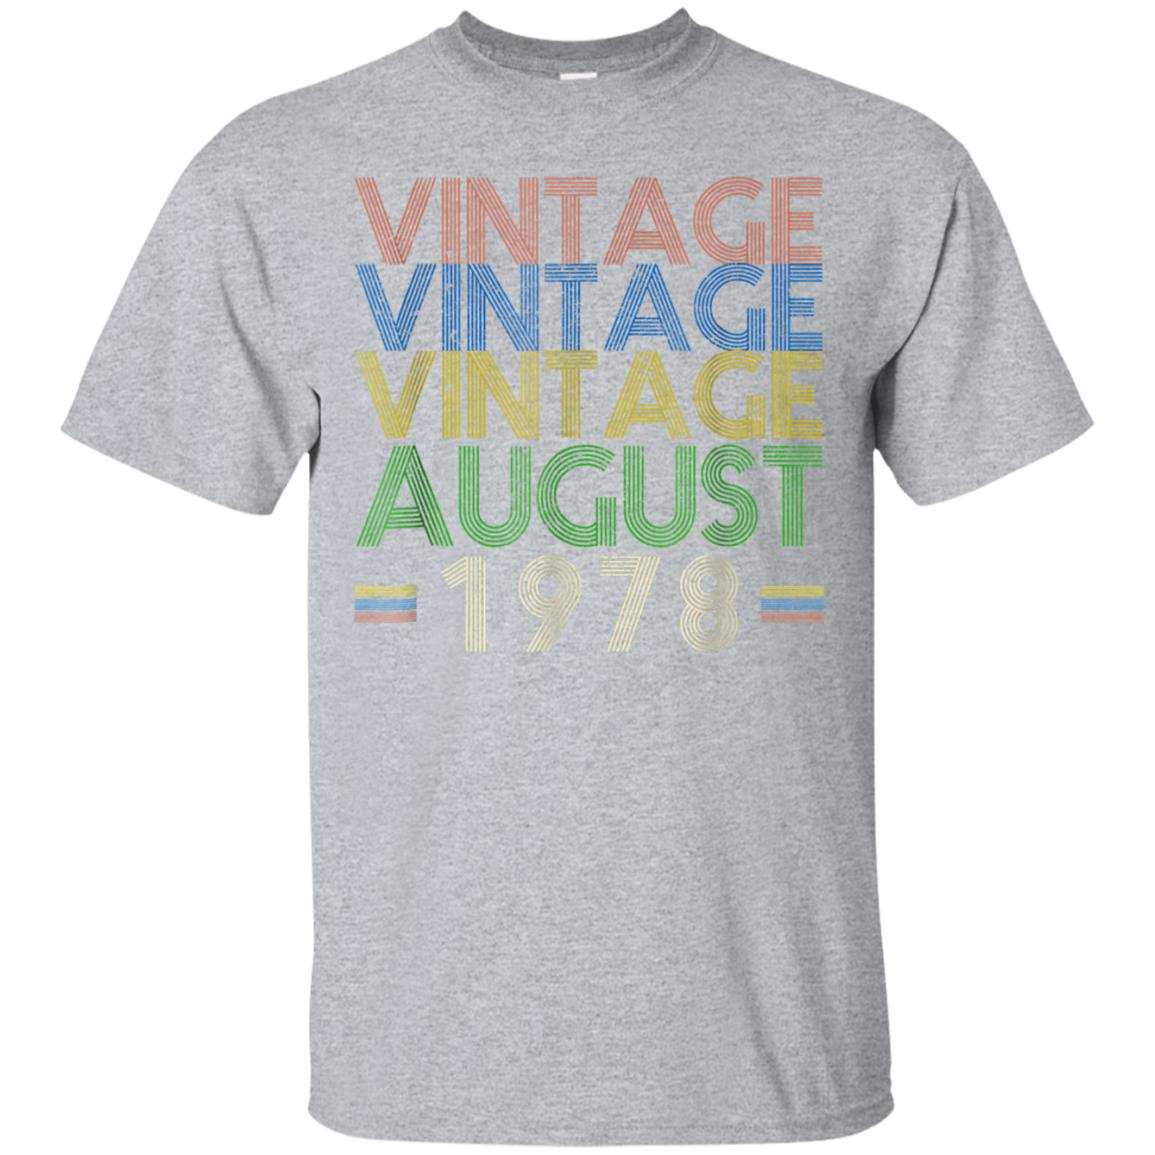 Vintage August 1978 T-Shirt Retro 70's-40th Birthday Tee 99promocode